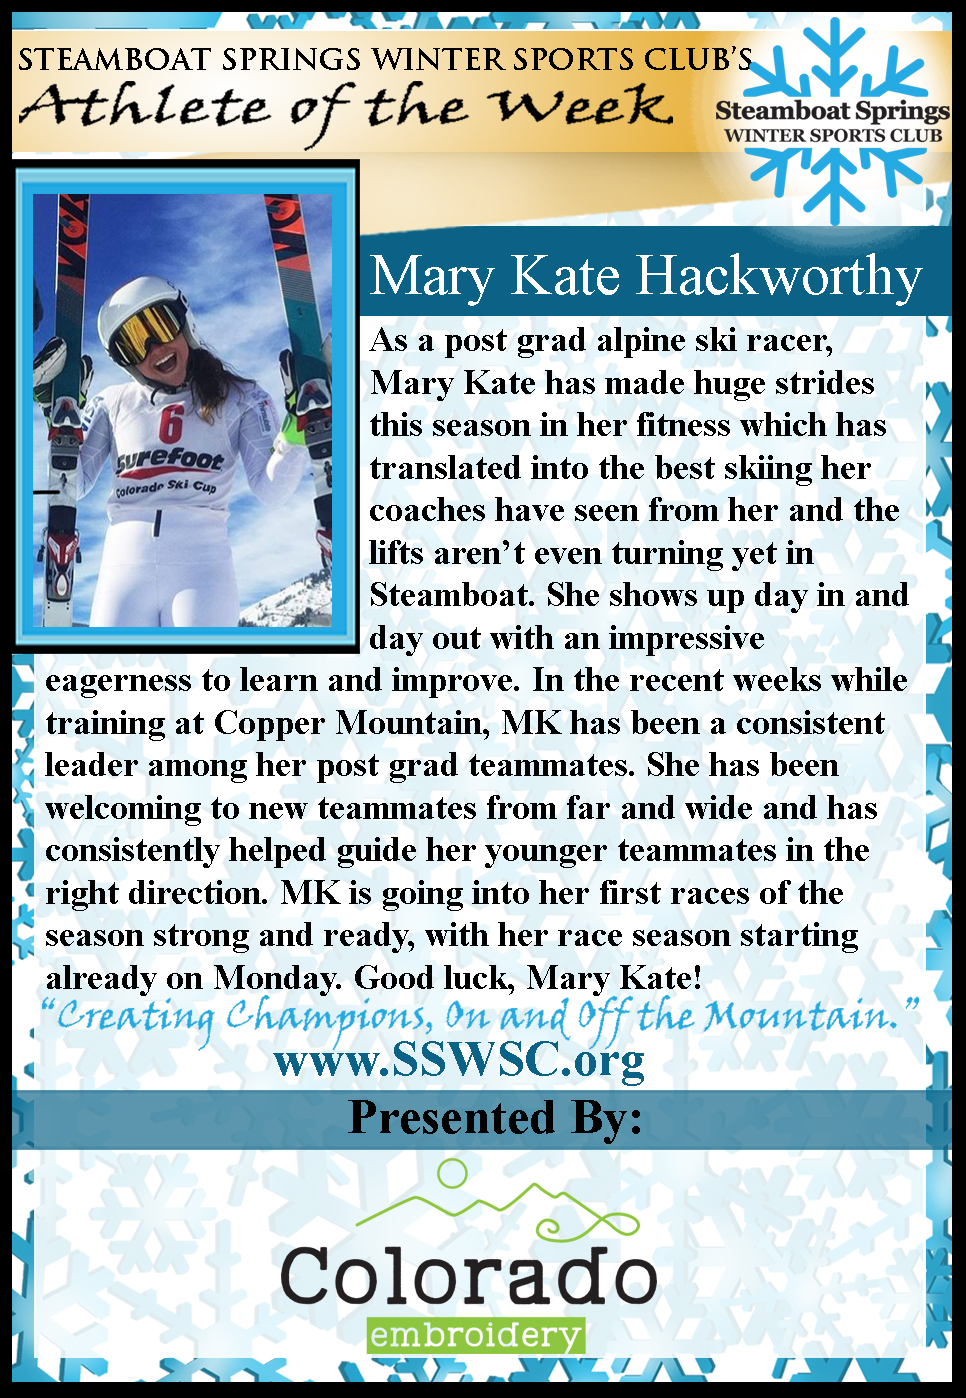 Athlete of the Week Mary Kate Hackworthy